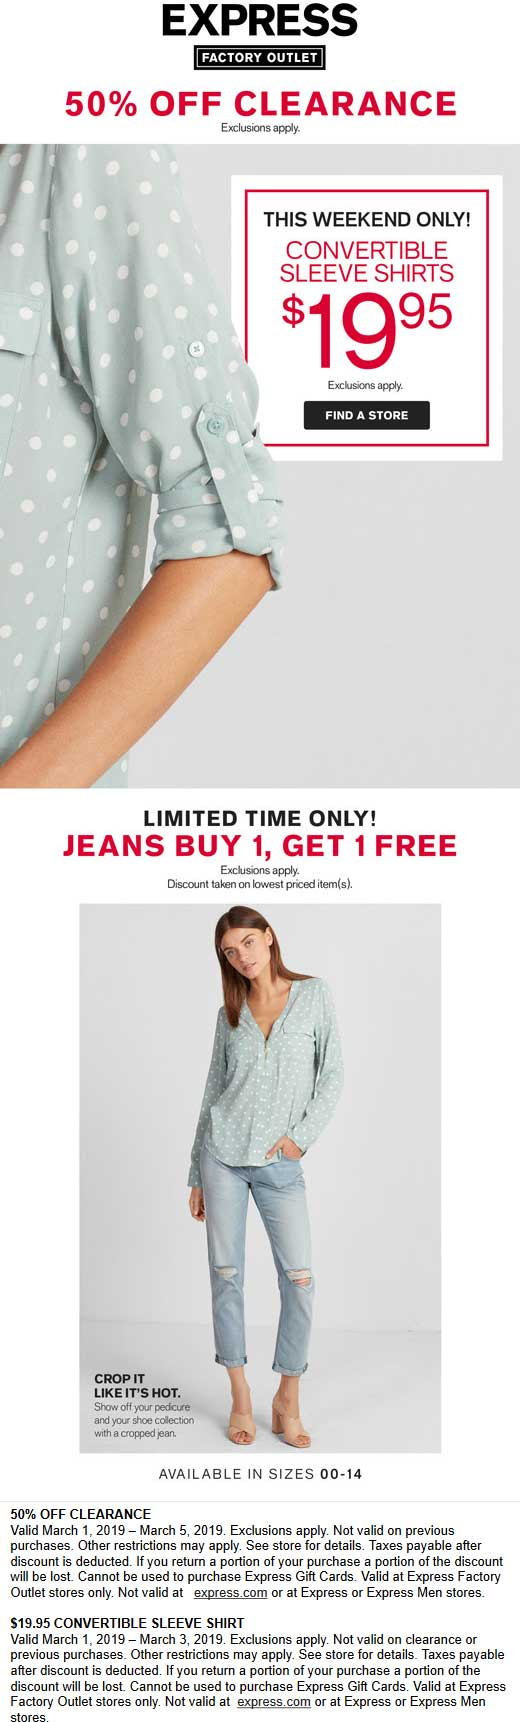 Express Factory Outlet Coupon September 2019 Extra 50% off clearance at Express Factory Outlet